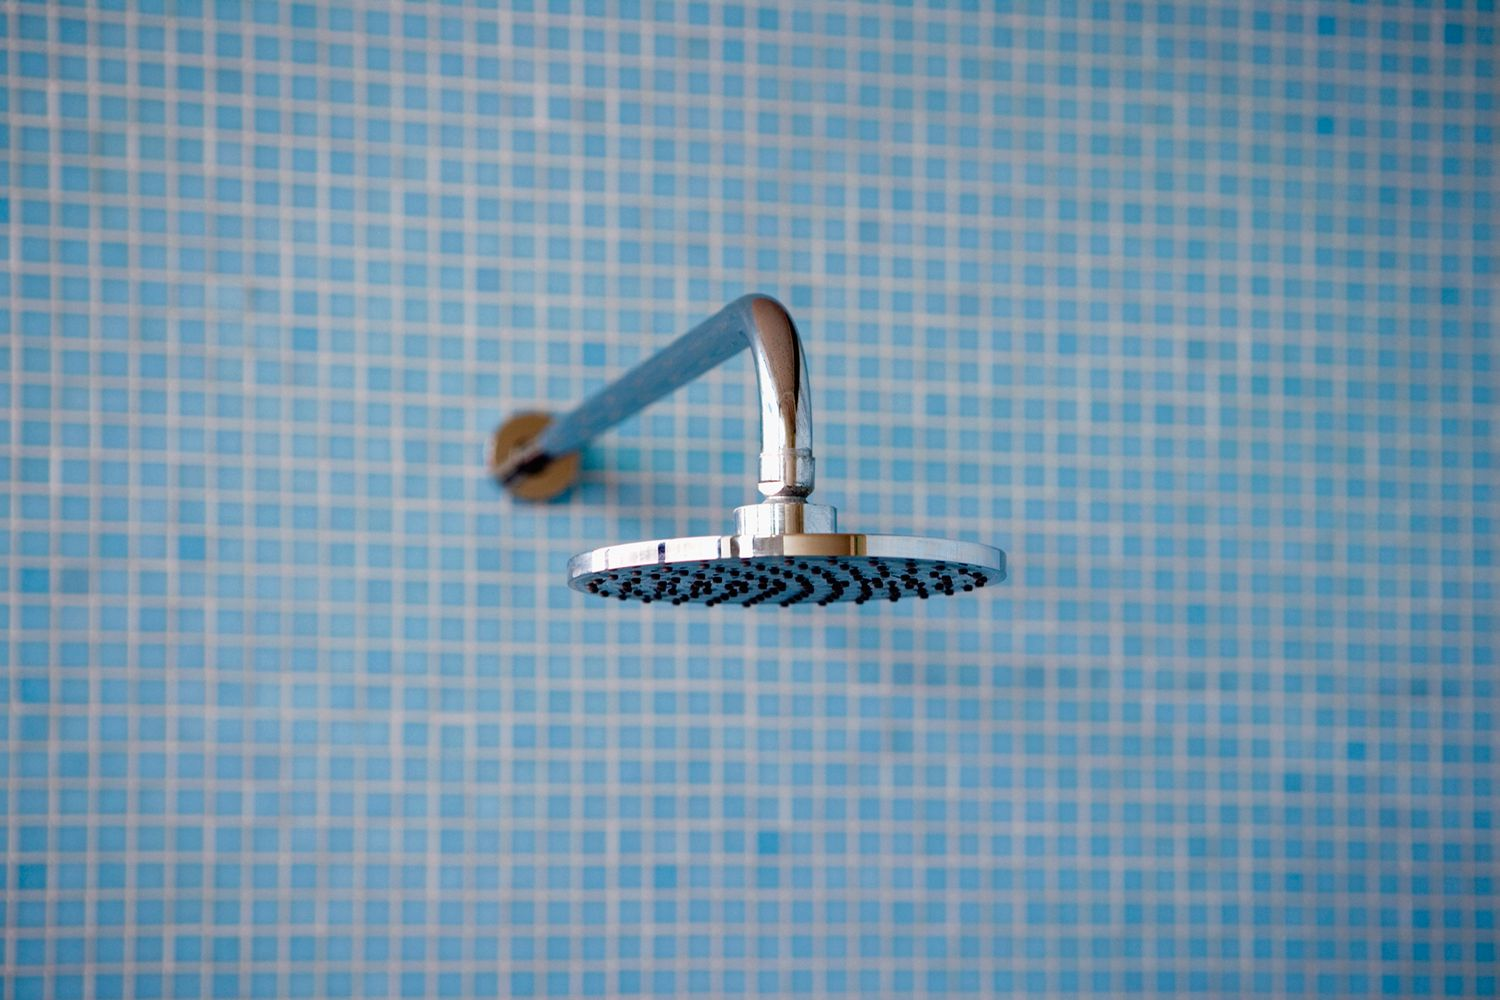 How to Renew a Shower With Epoxy Paint